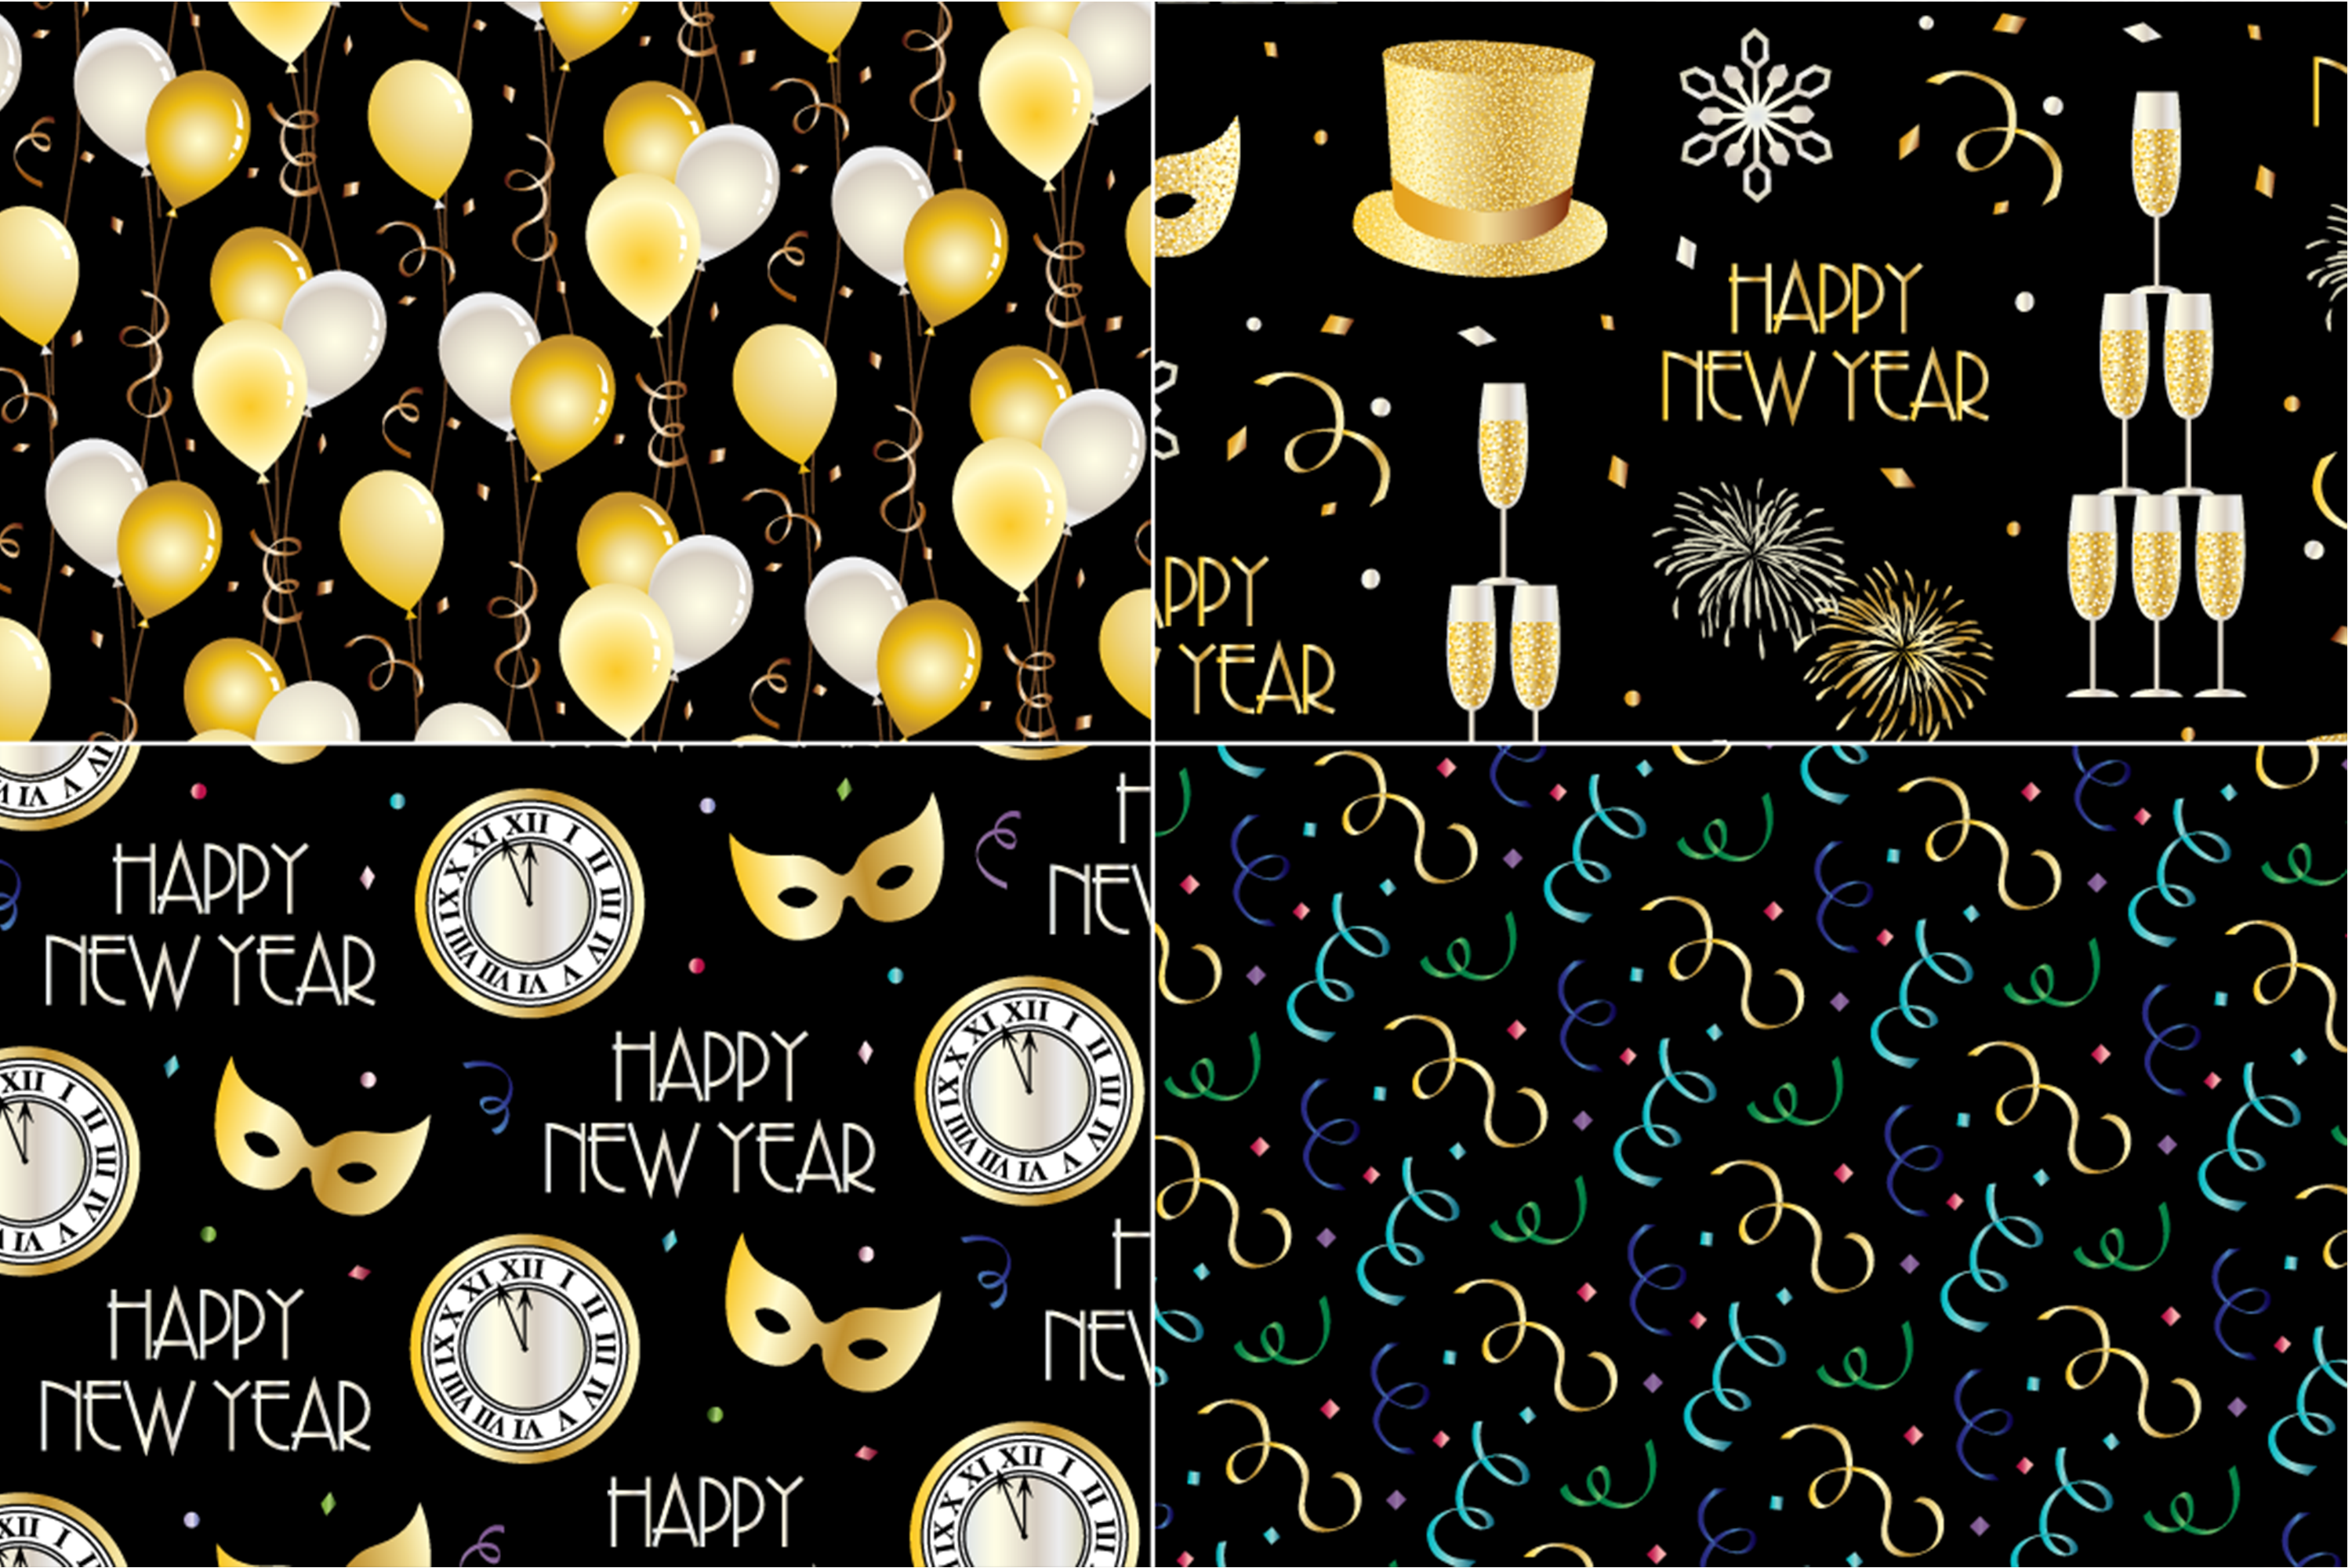 New Year's Eve Patterns example image 4